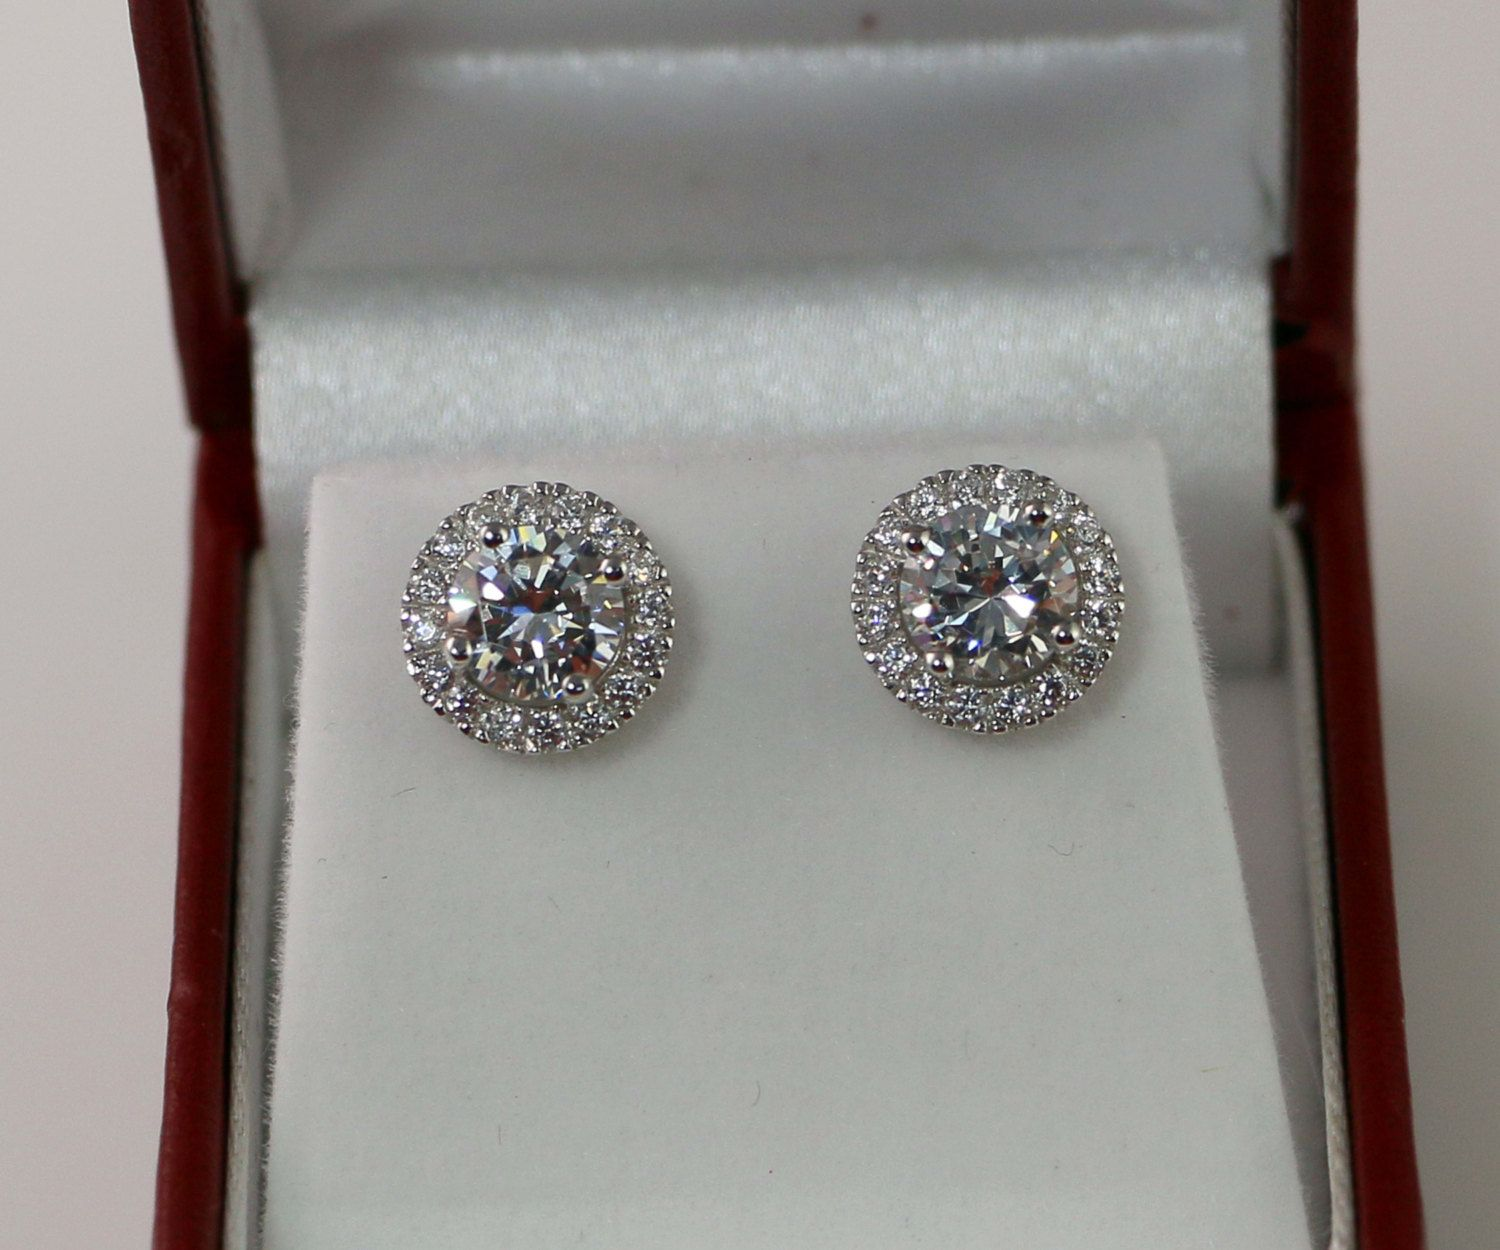 2 Carat Round Halo earrings, Sterling Silver, Halo Bridal studs, Bridemaid earrings, Wedding, Birthstone, CZ studs, cubic zirconia studs